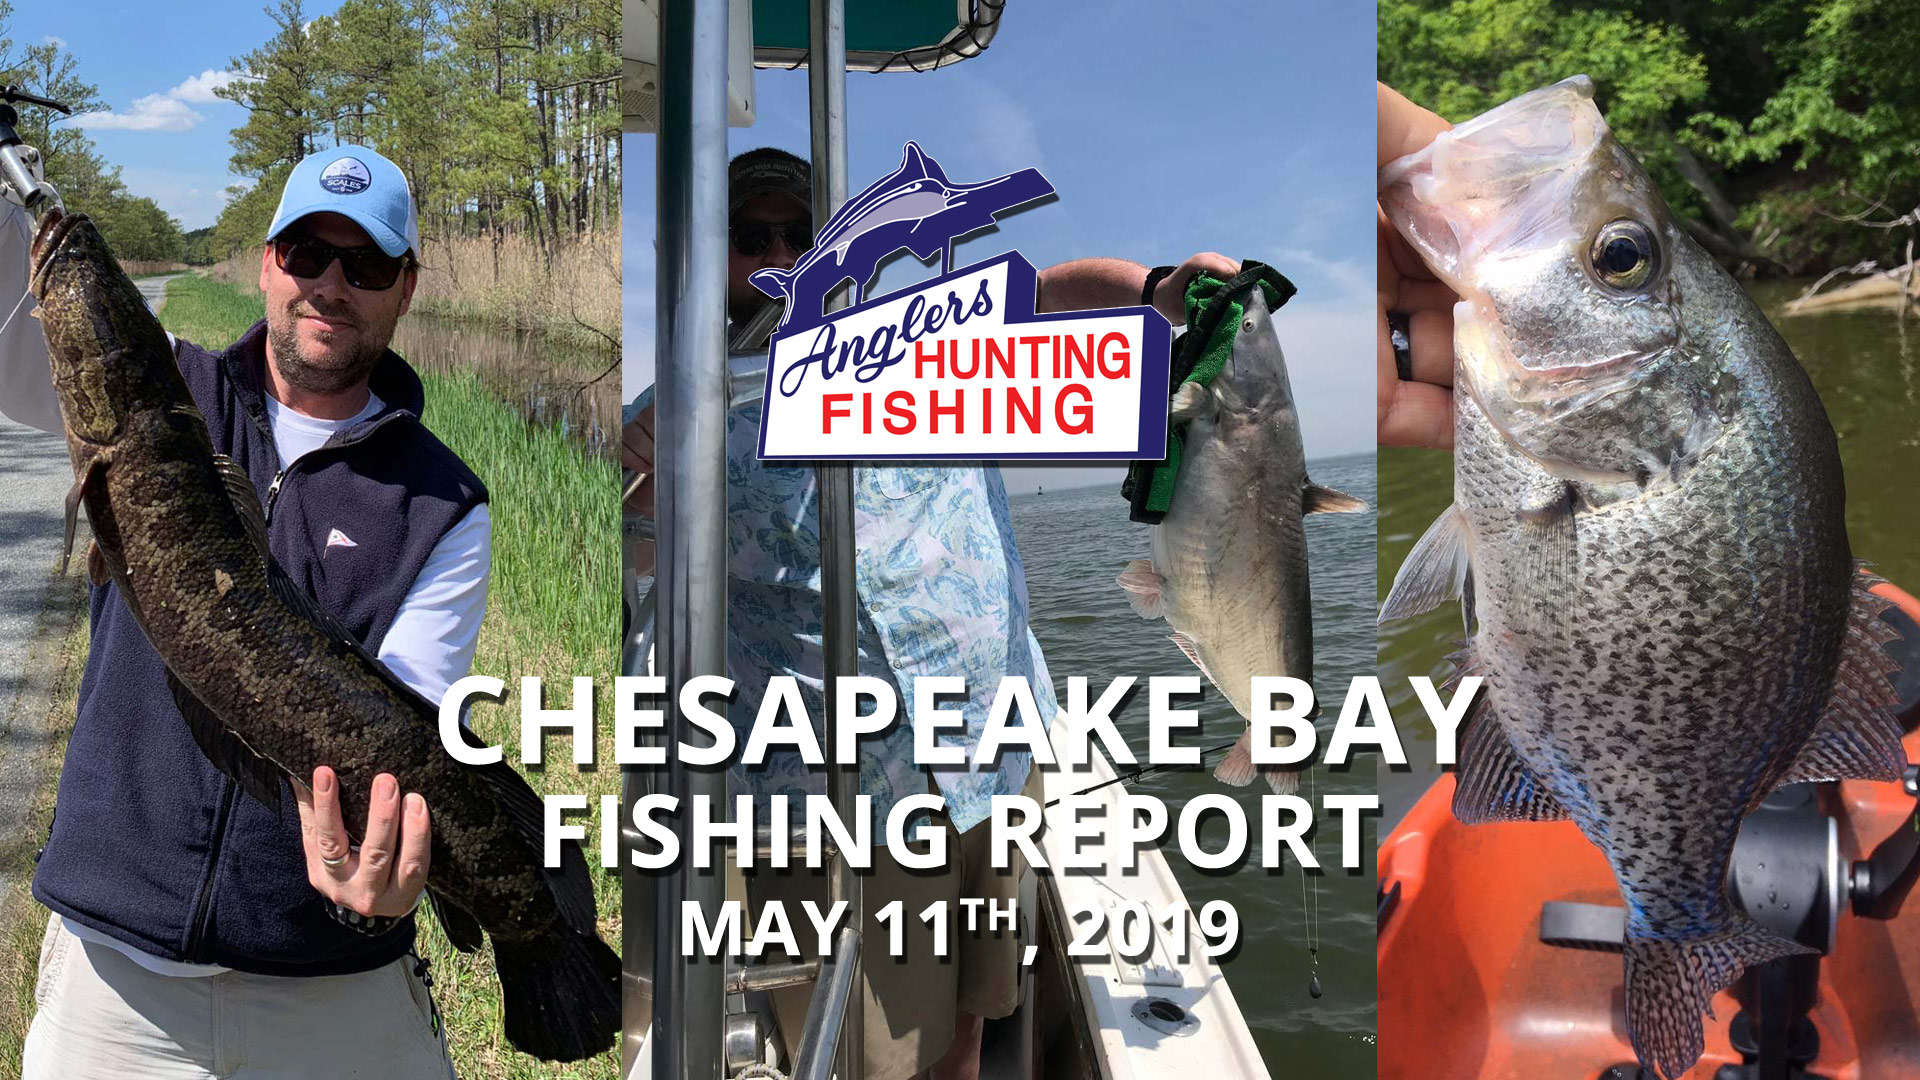 Chesapeake Bay Fishing Report - May 11th, 2019